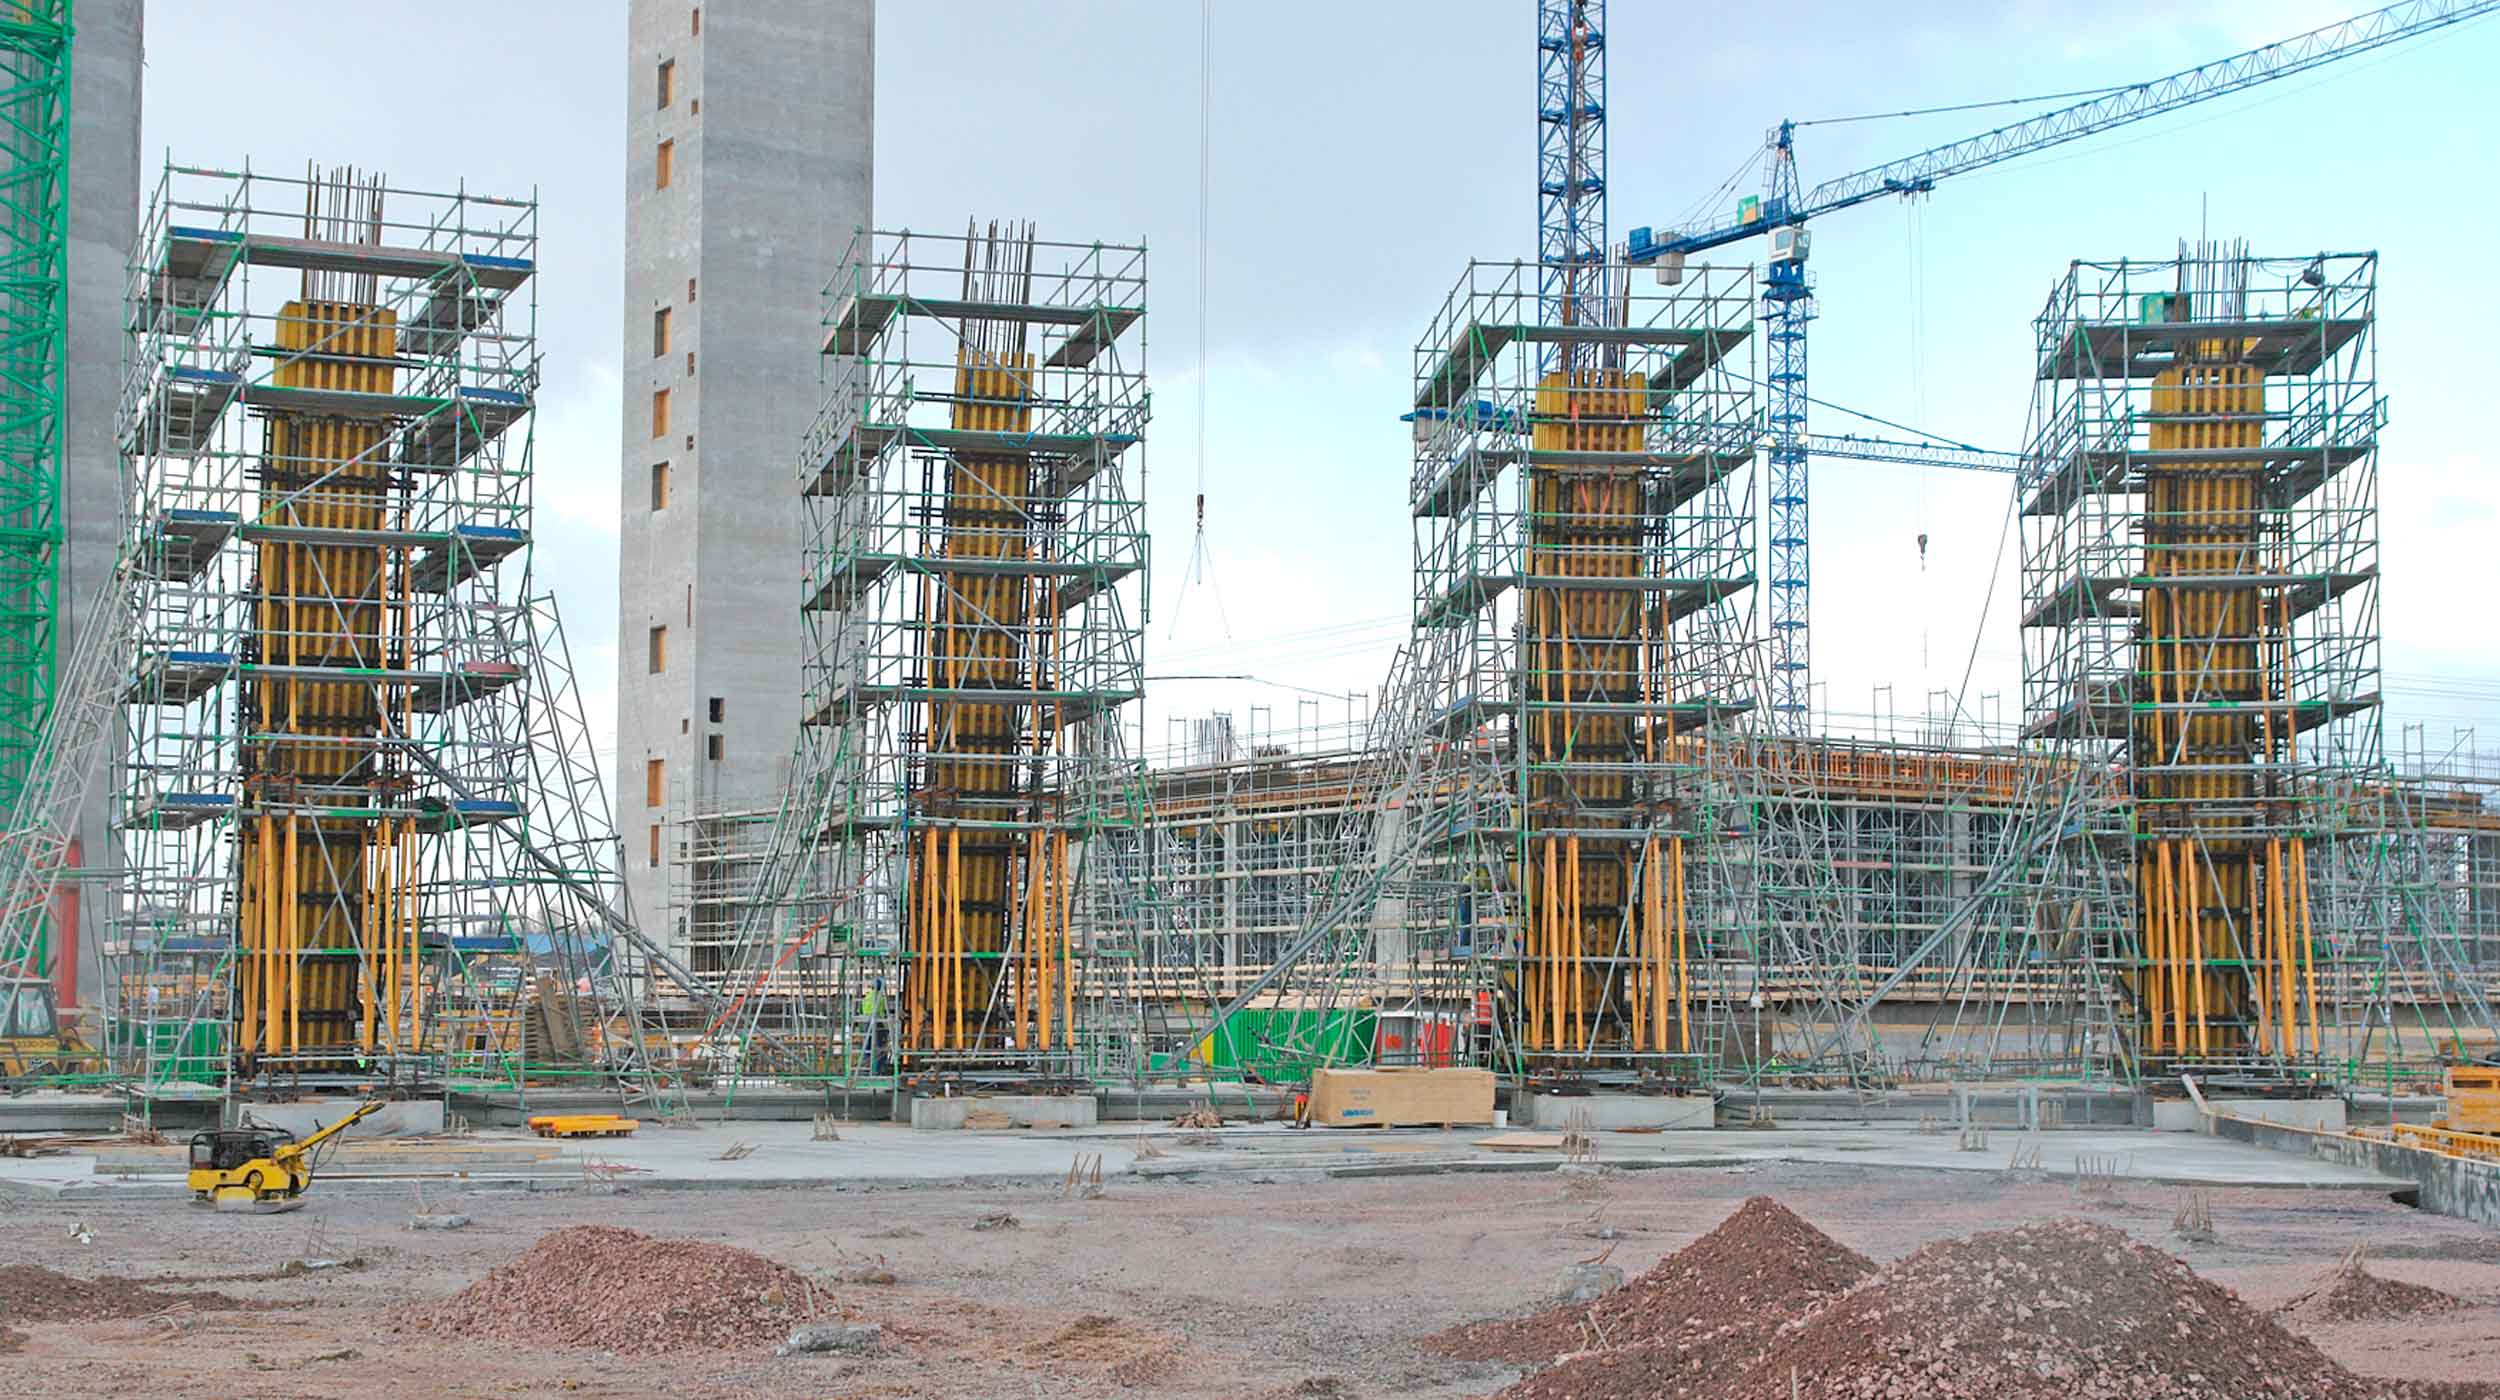 It is one of the largest construction projects to be carried out in recent years in North Rhine-Westphalia: a new generation of power plants, the first one in Datteln.